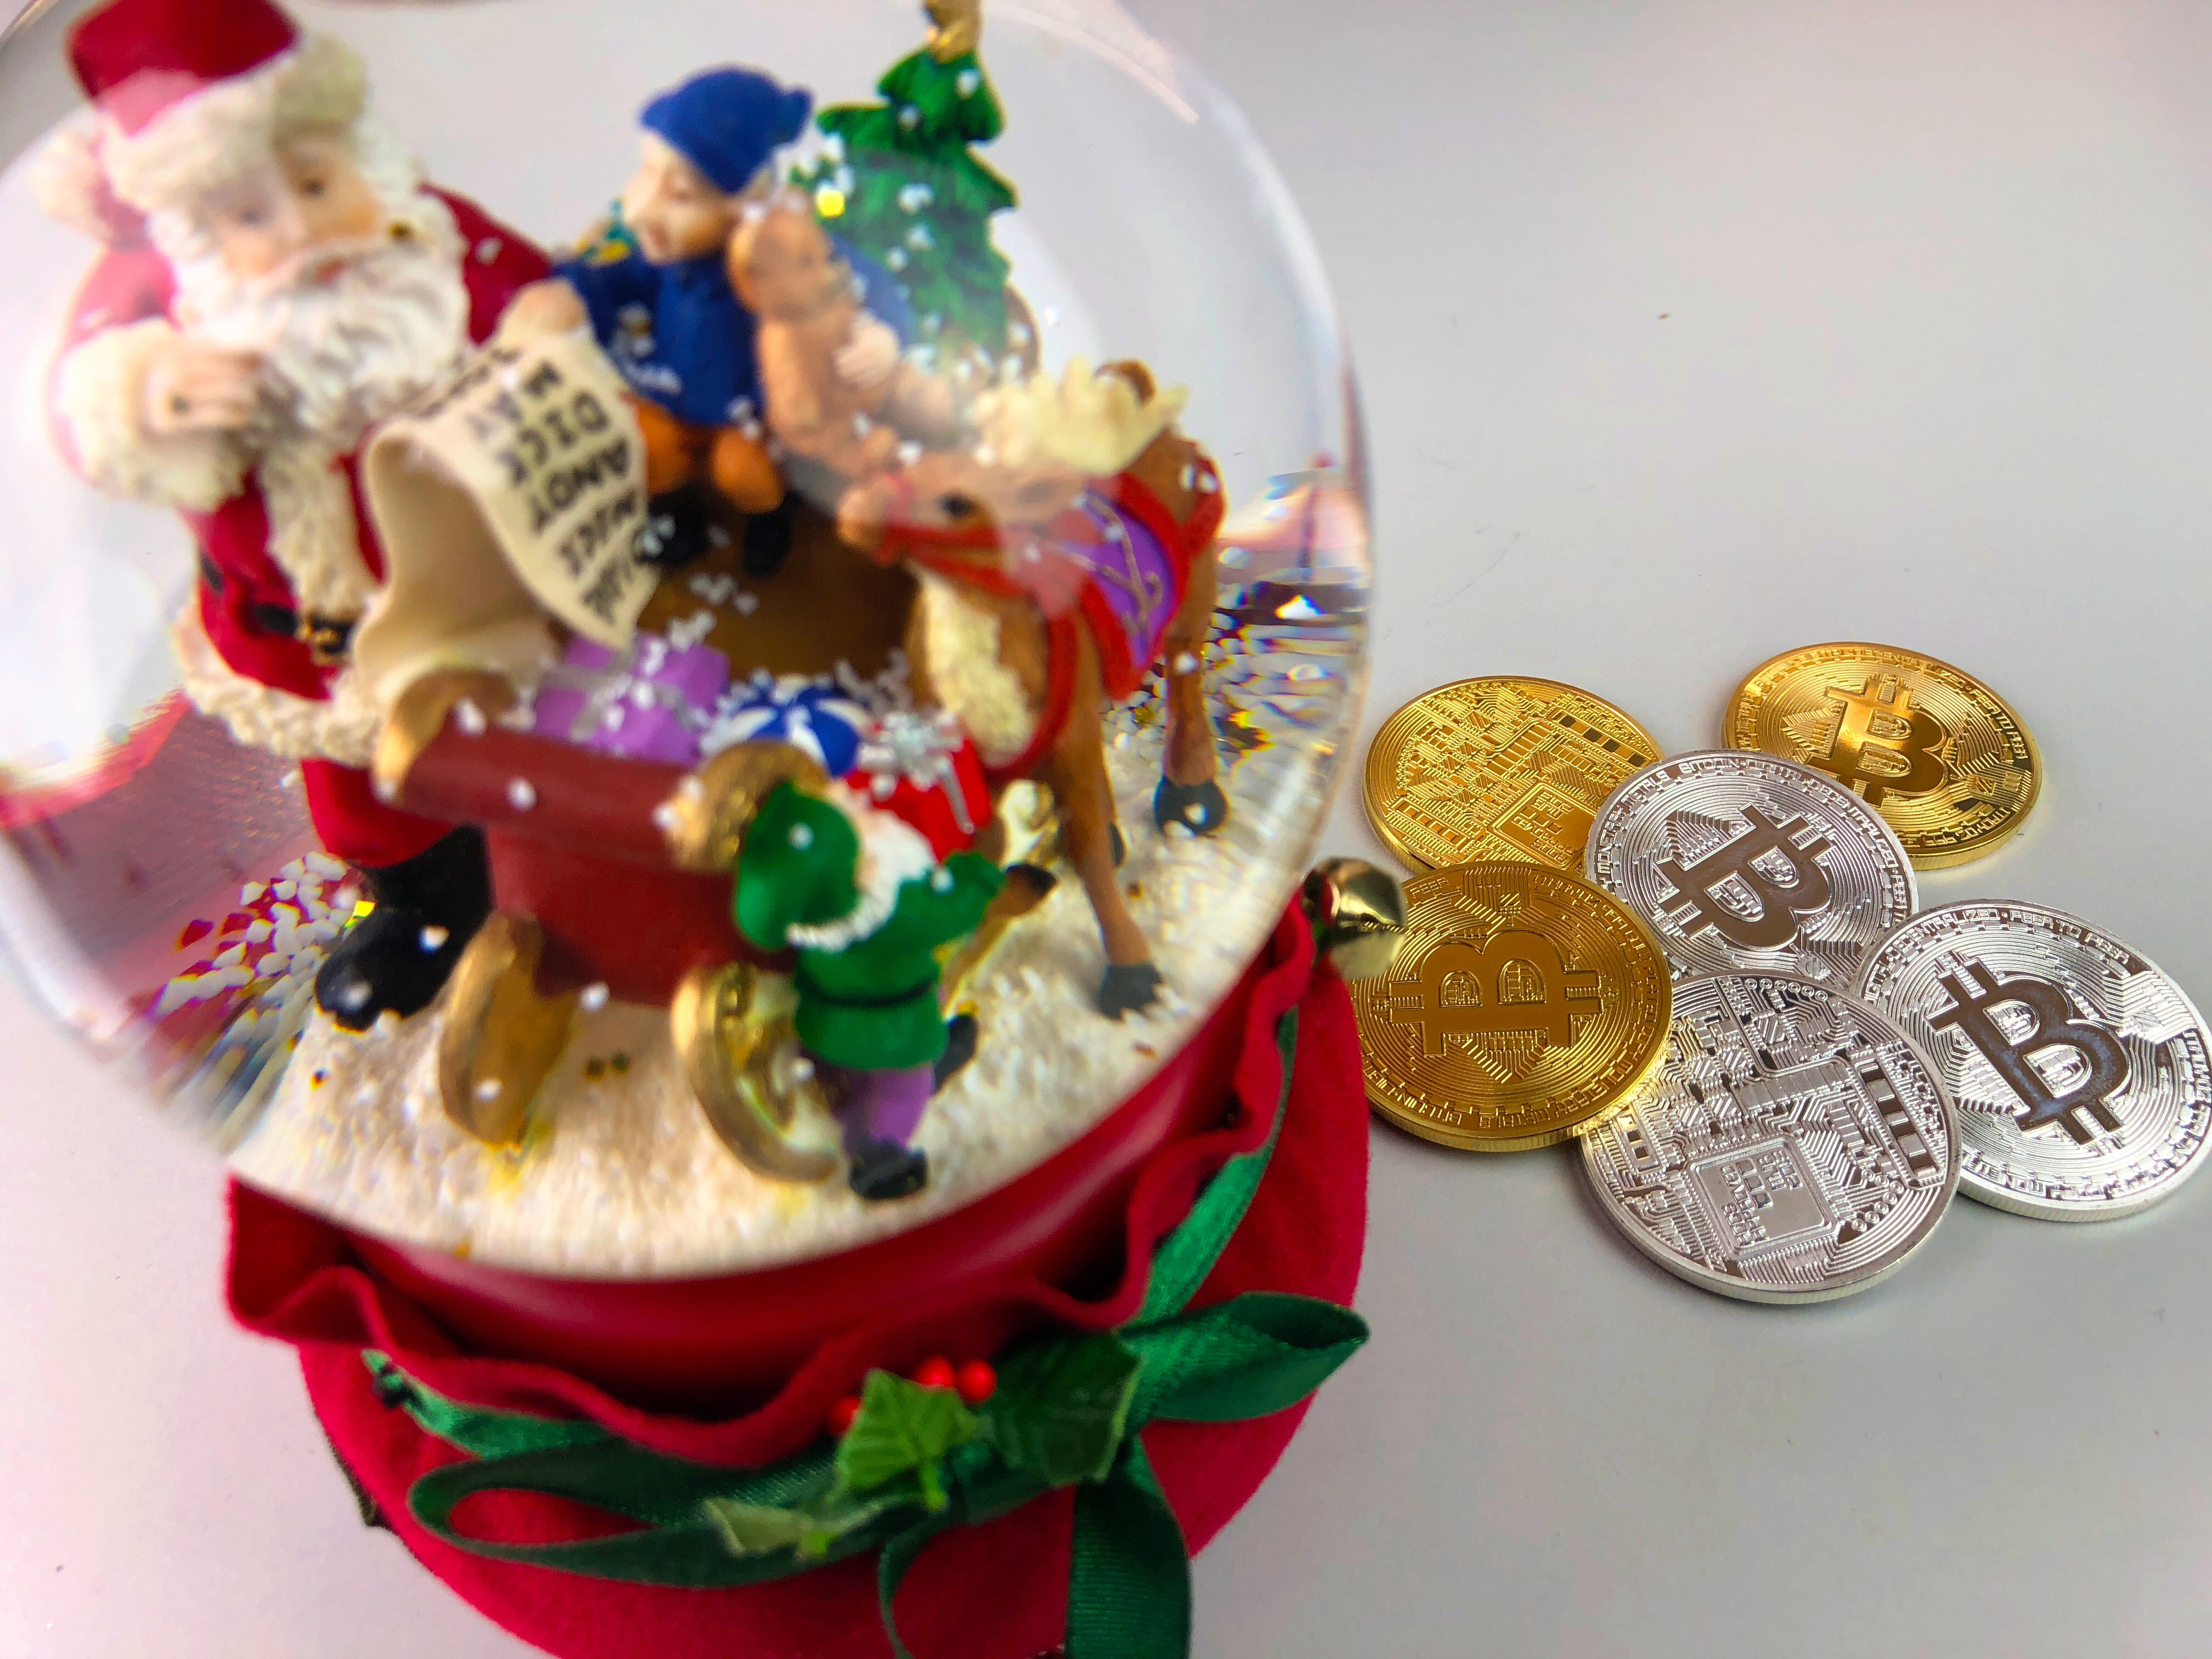 Free stock photo of bitcoin, christmas, cryptocurrency - 웹